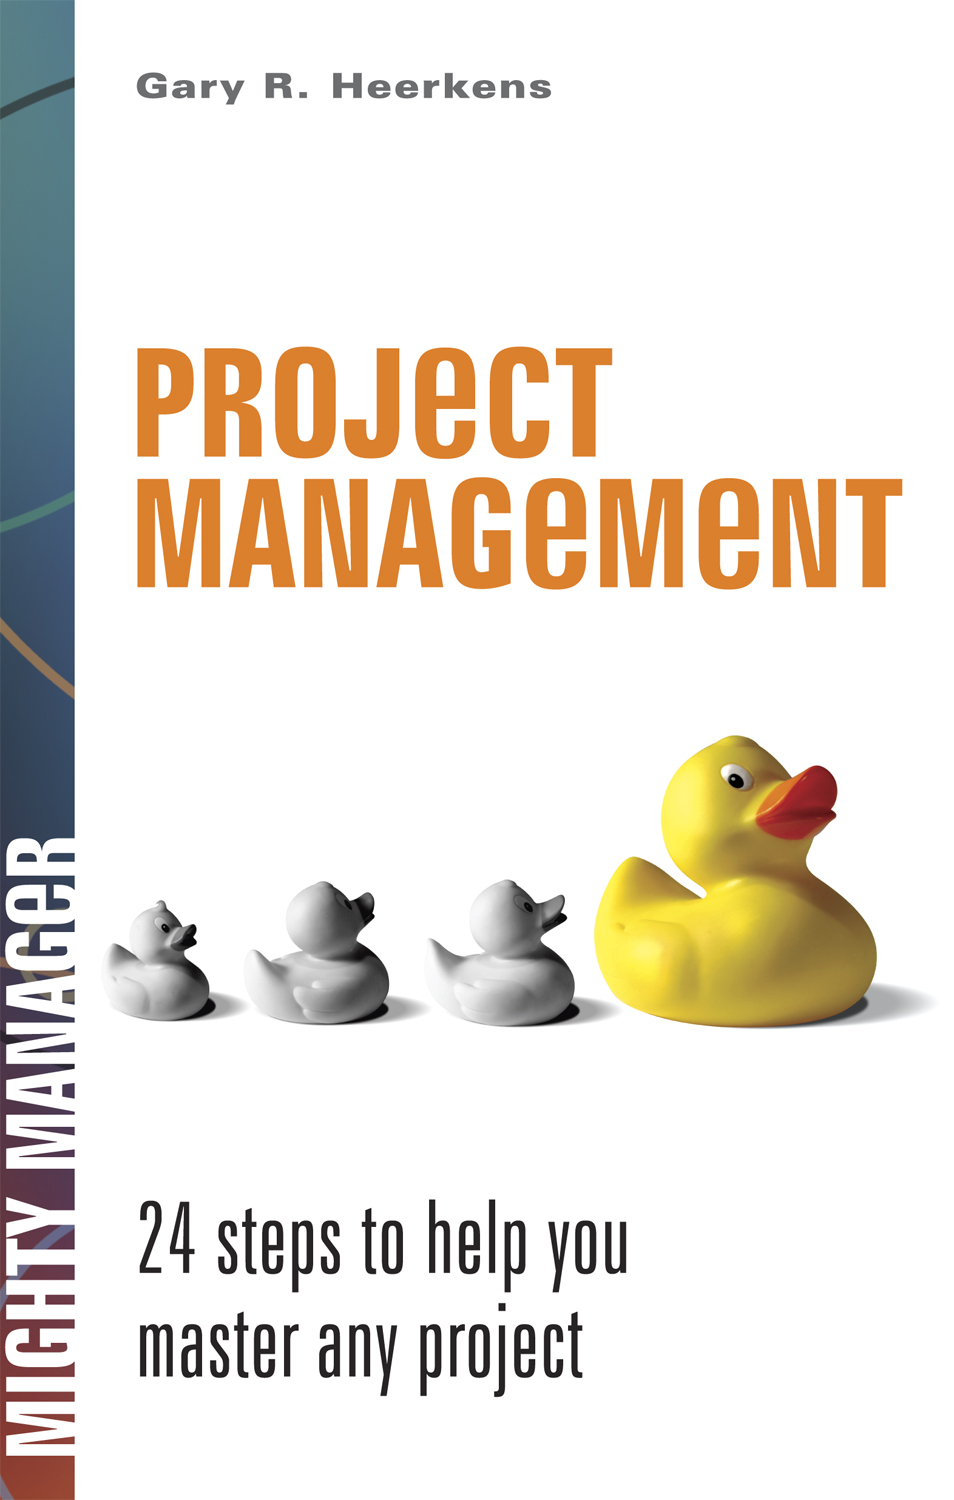 Download Ebook Project Management by Gary R. Heerkens Pdf